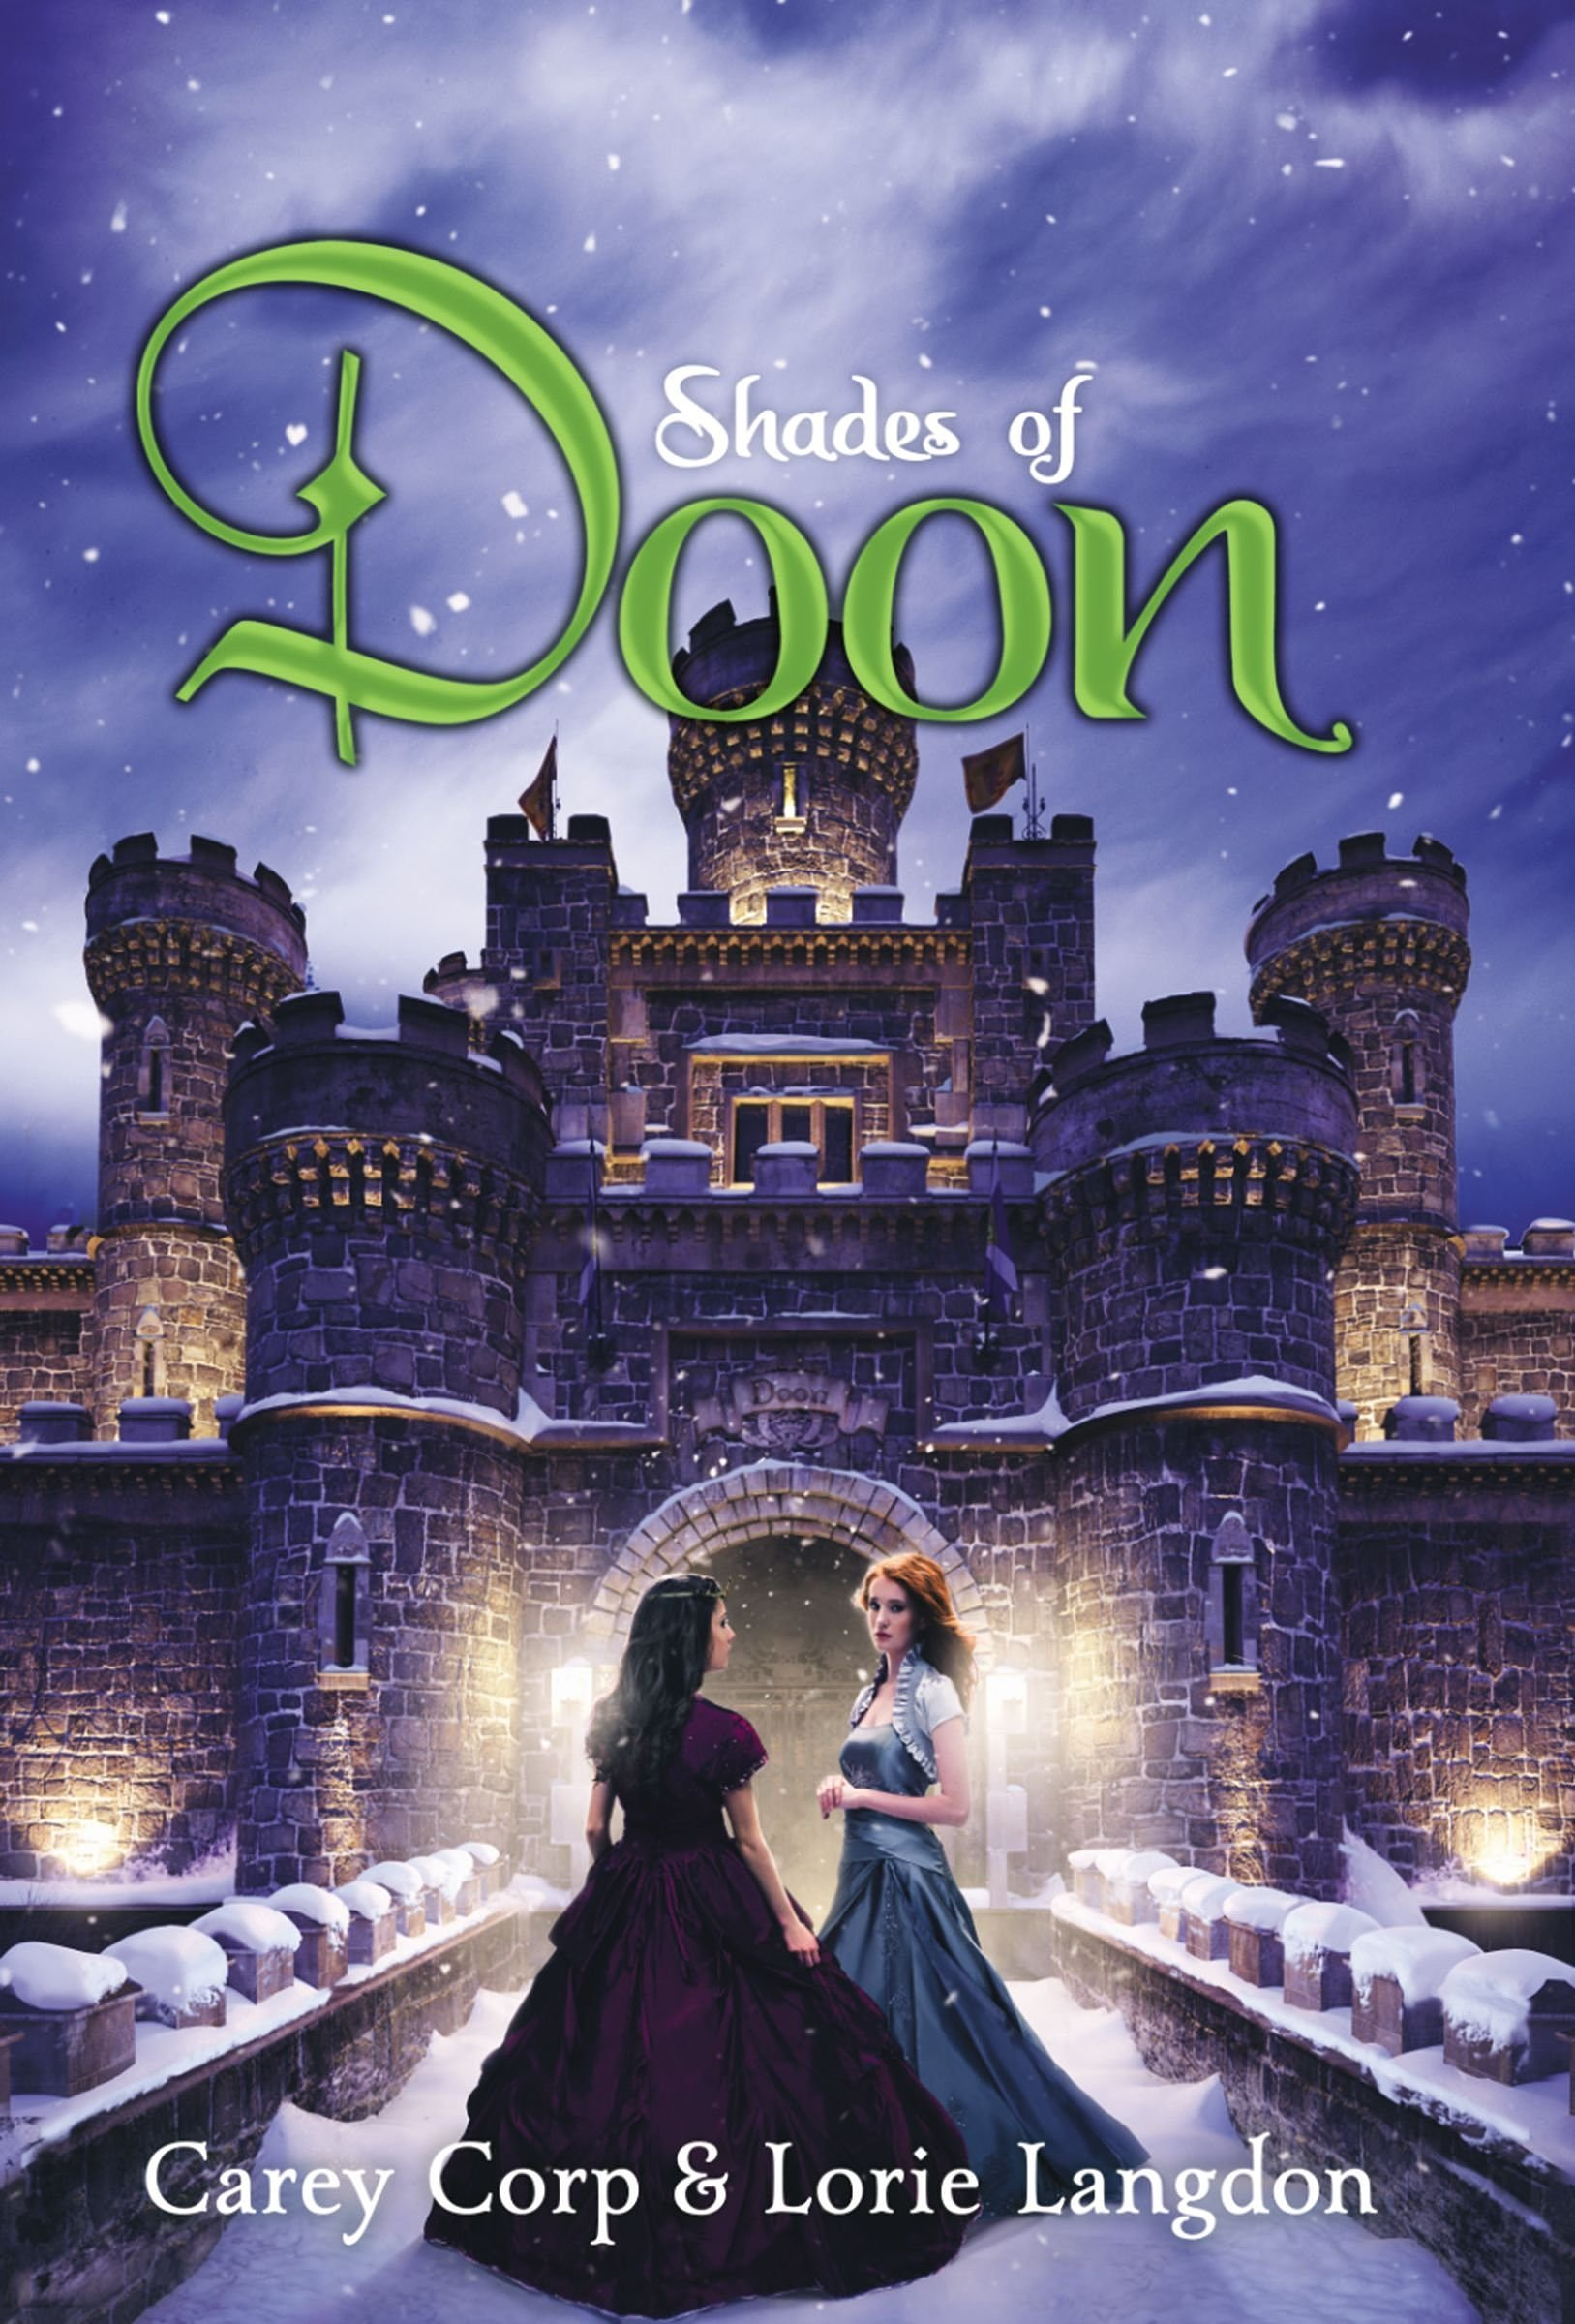 book review: Shades of Doon by Carey Corp & Lorie Langdon on willbakeforbooks.com